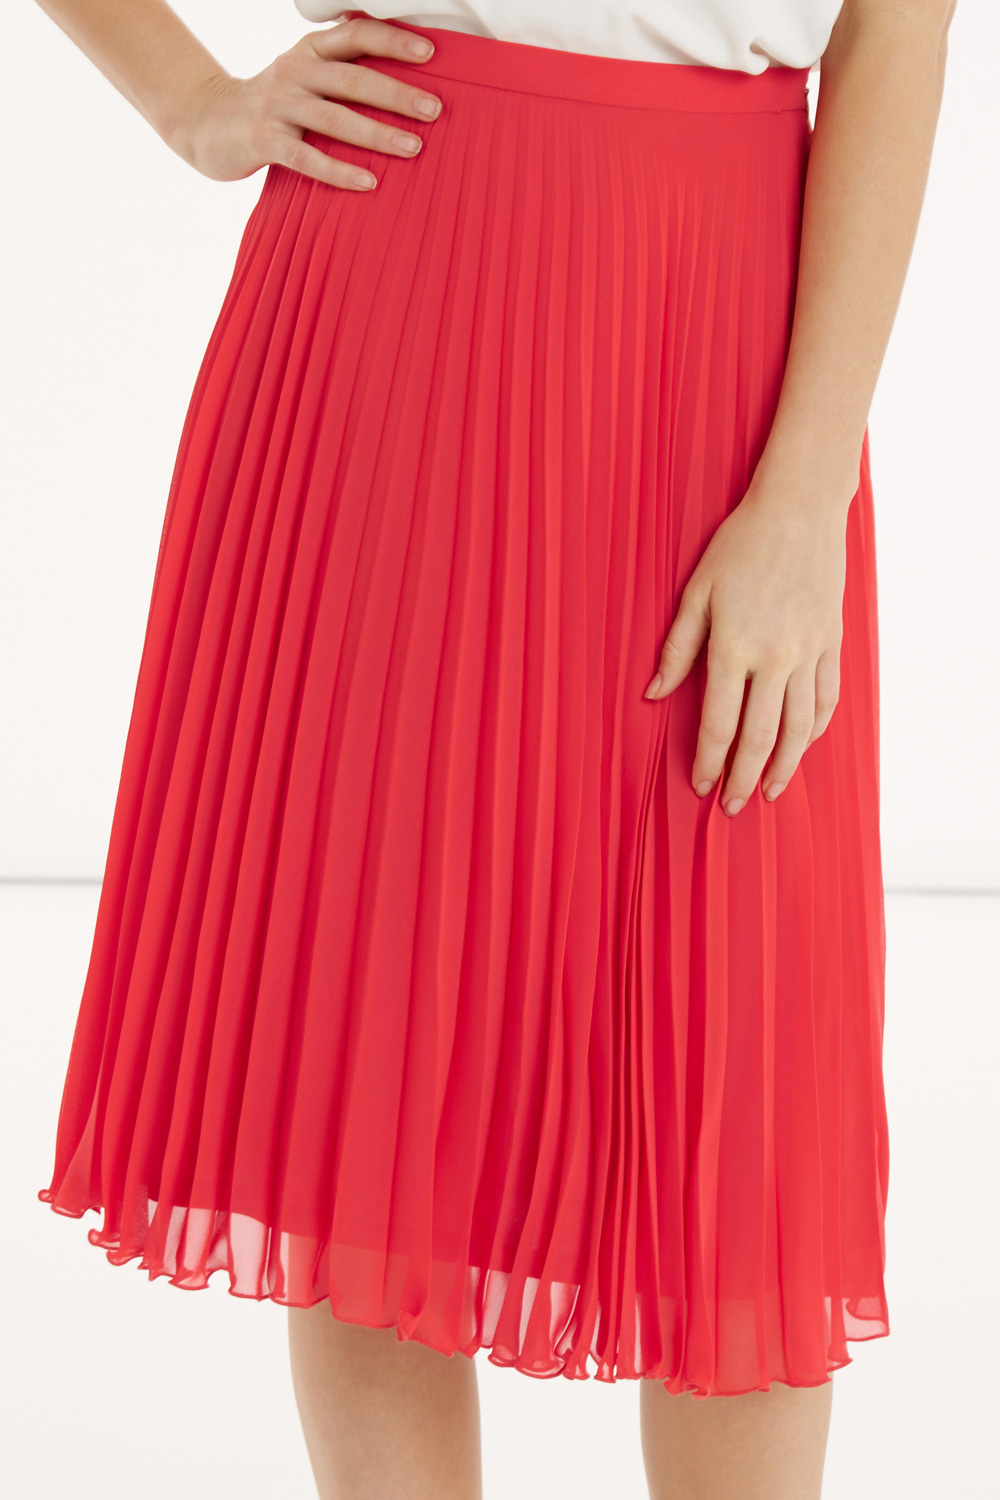 Pleated Red Skirt - Skirts